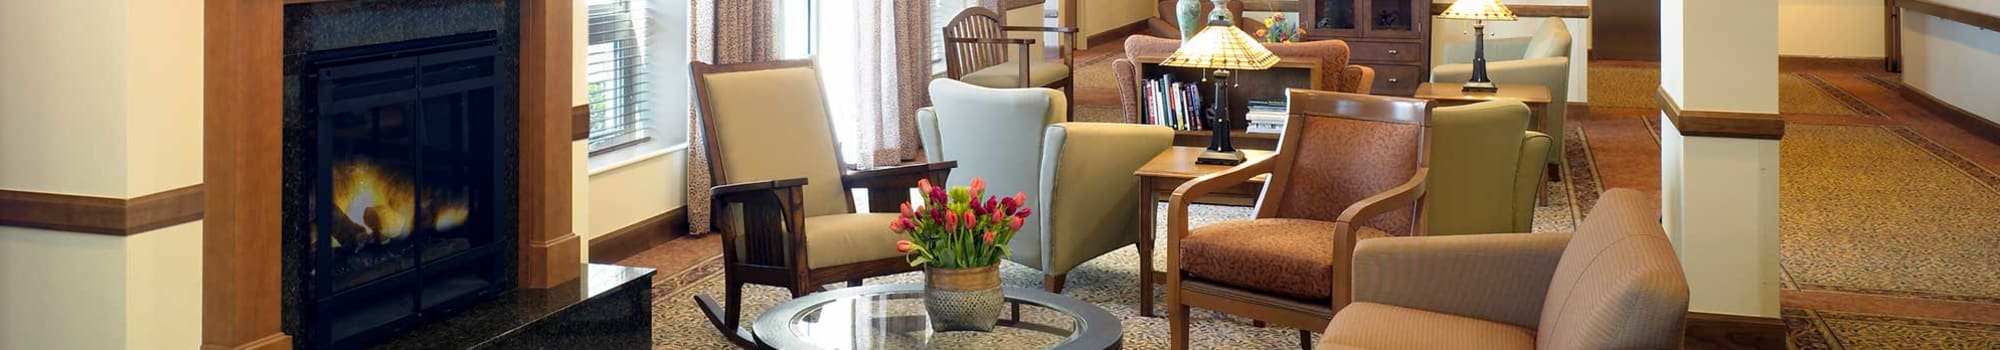 Assisted living in Olney, IL